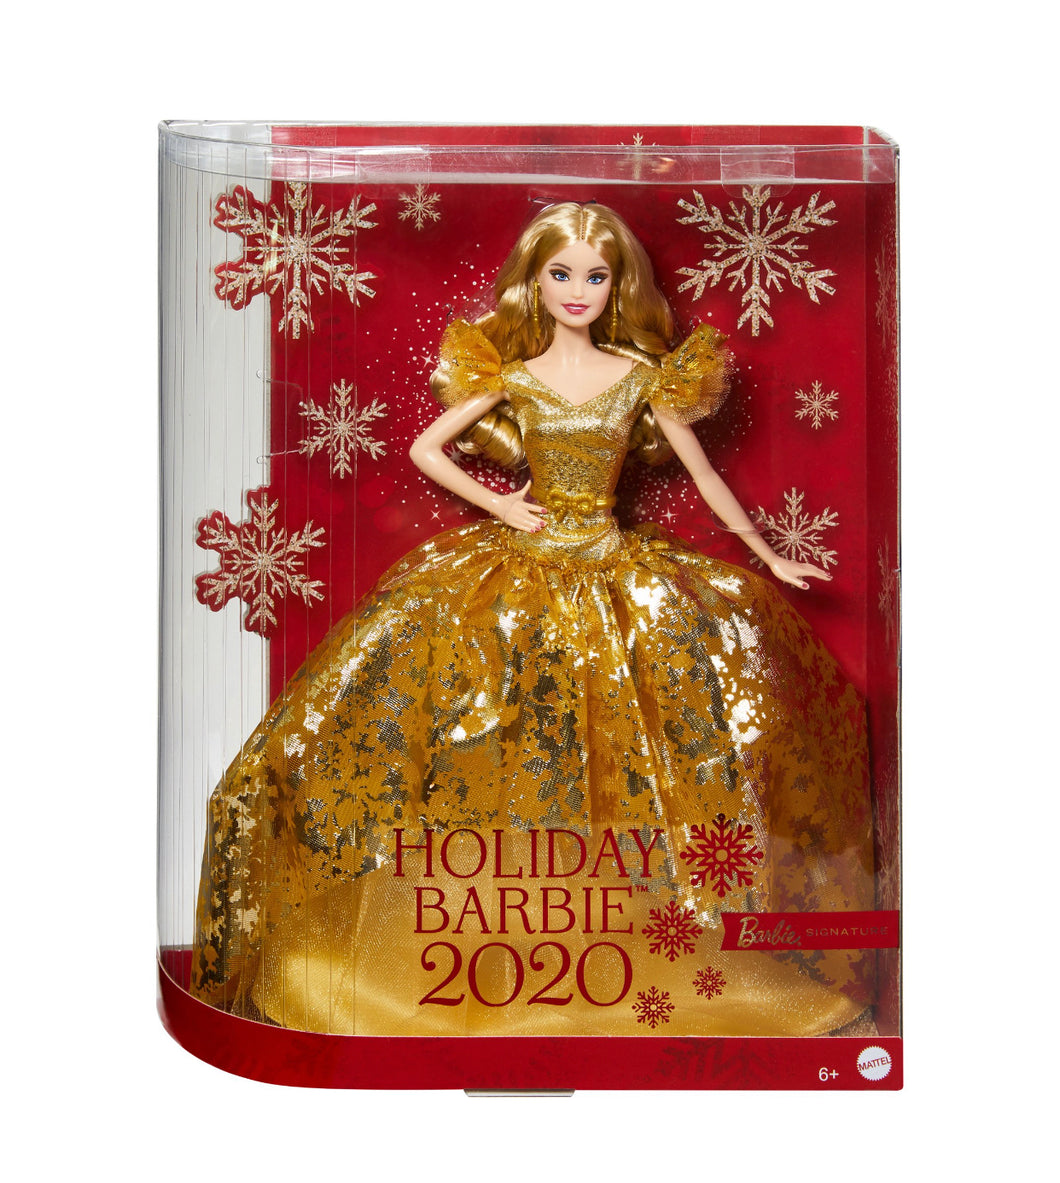 2020 Holiday Barbie